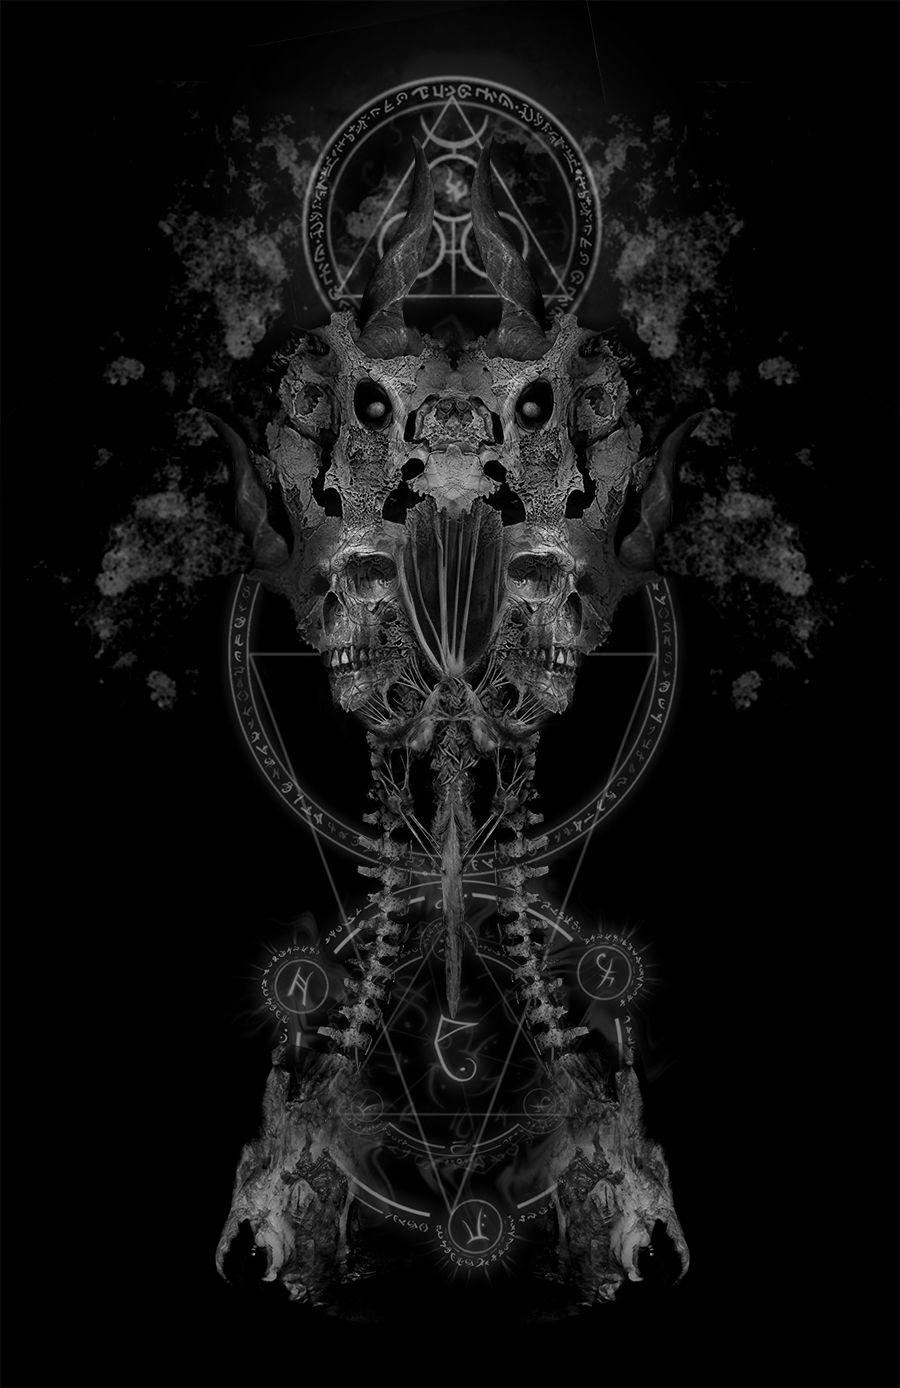 gothic iphone wallpaper untitled iv by myopicmephitic in 2019 8943